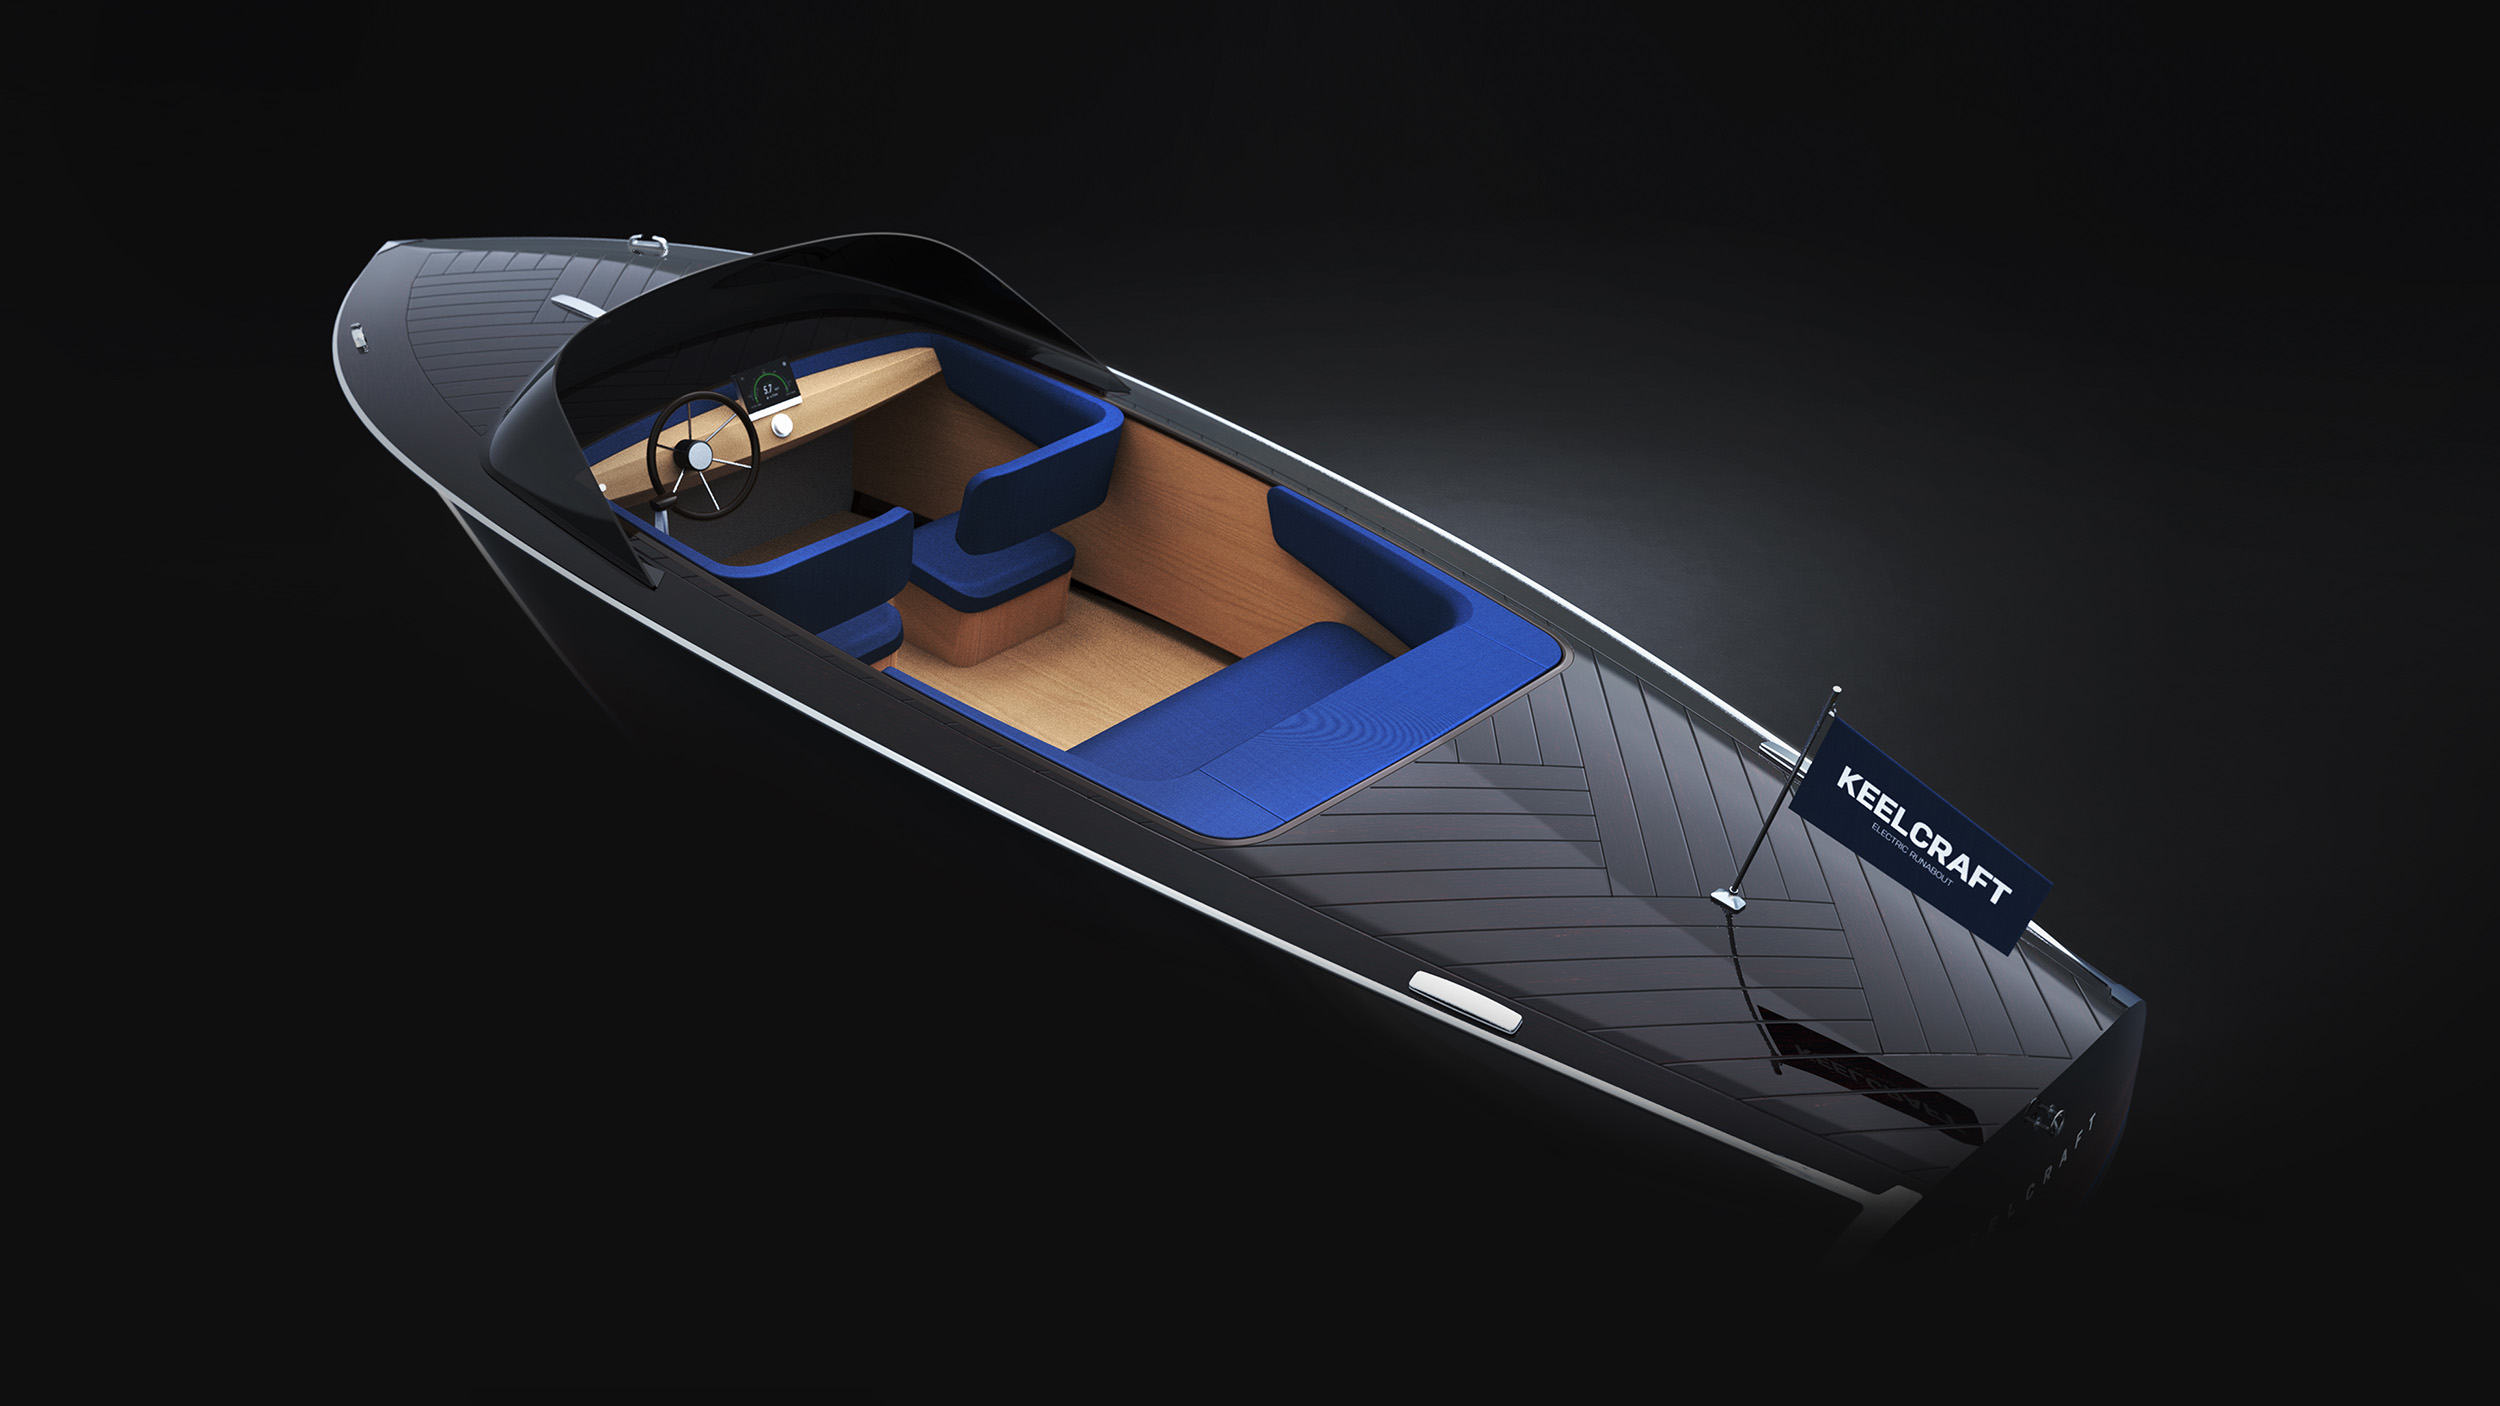 KeelCraft electric runabout 3D view